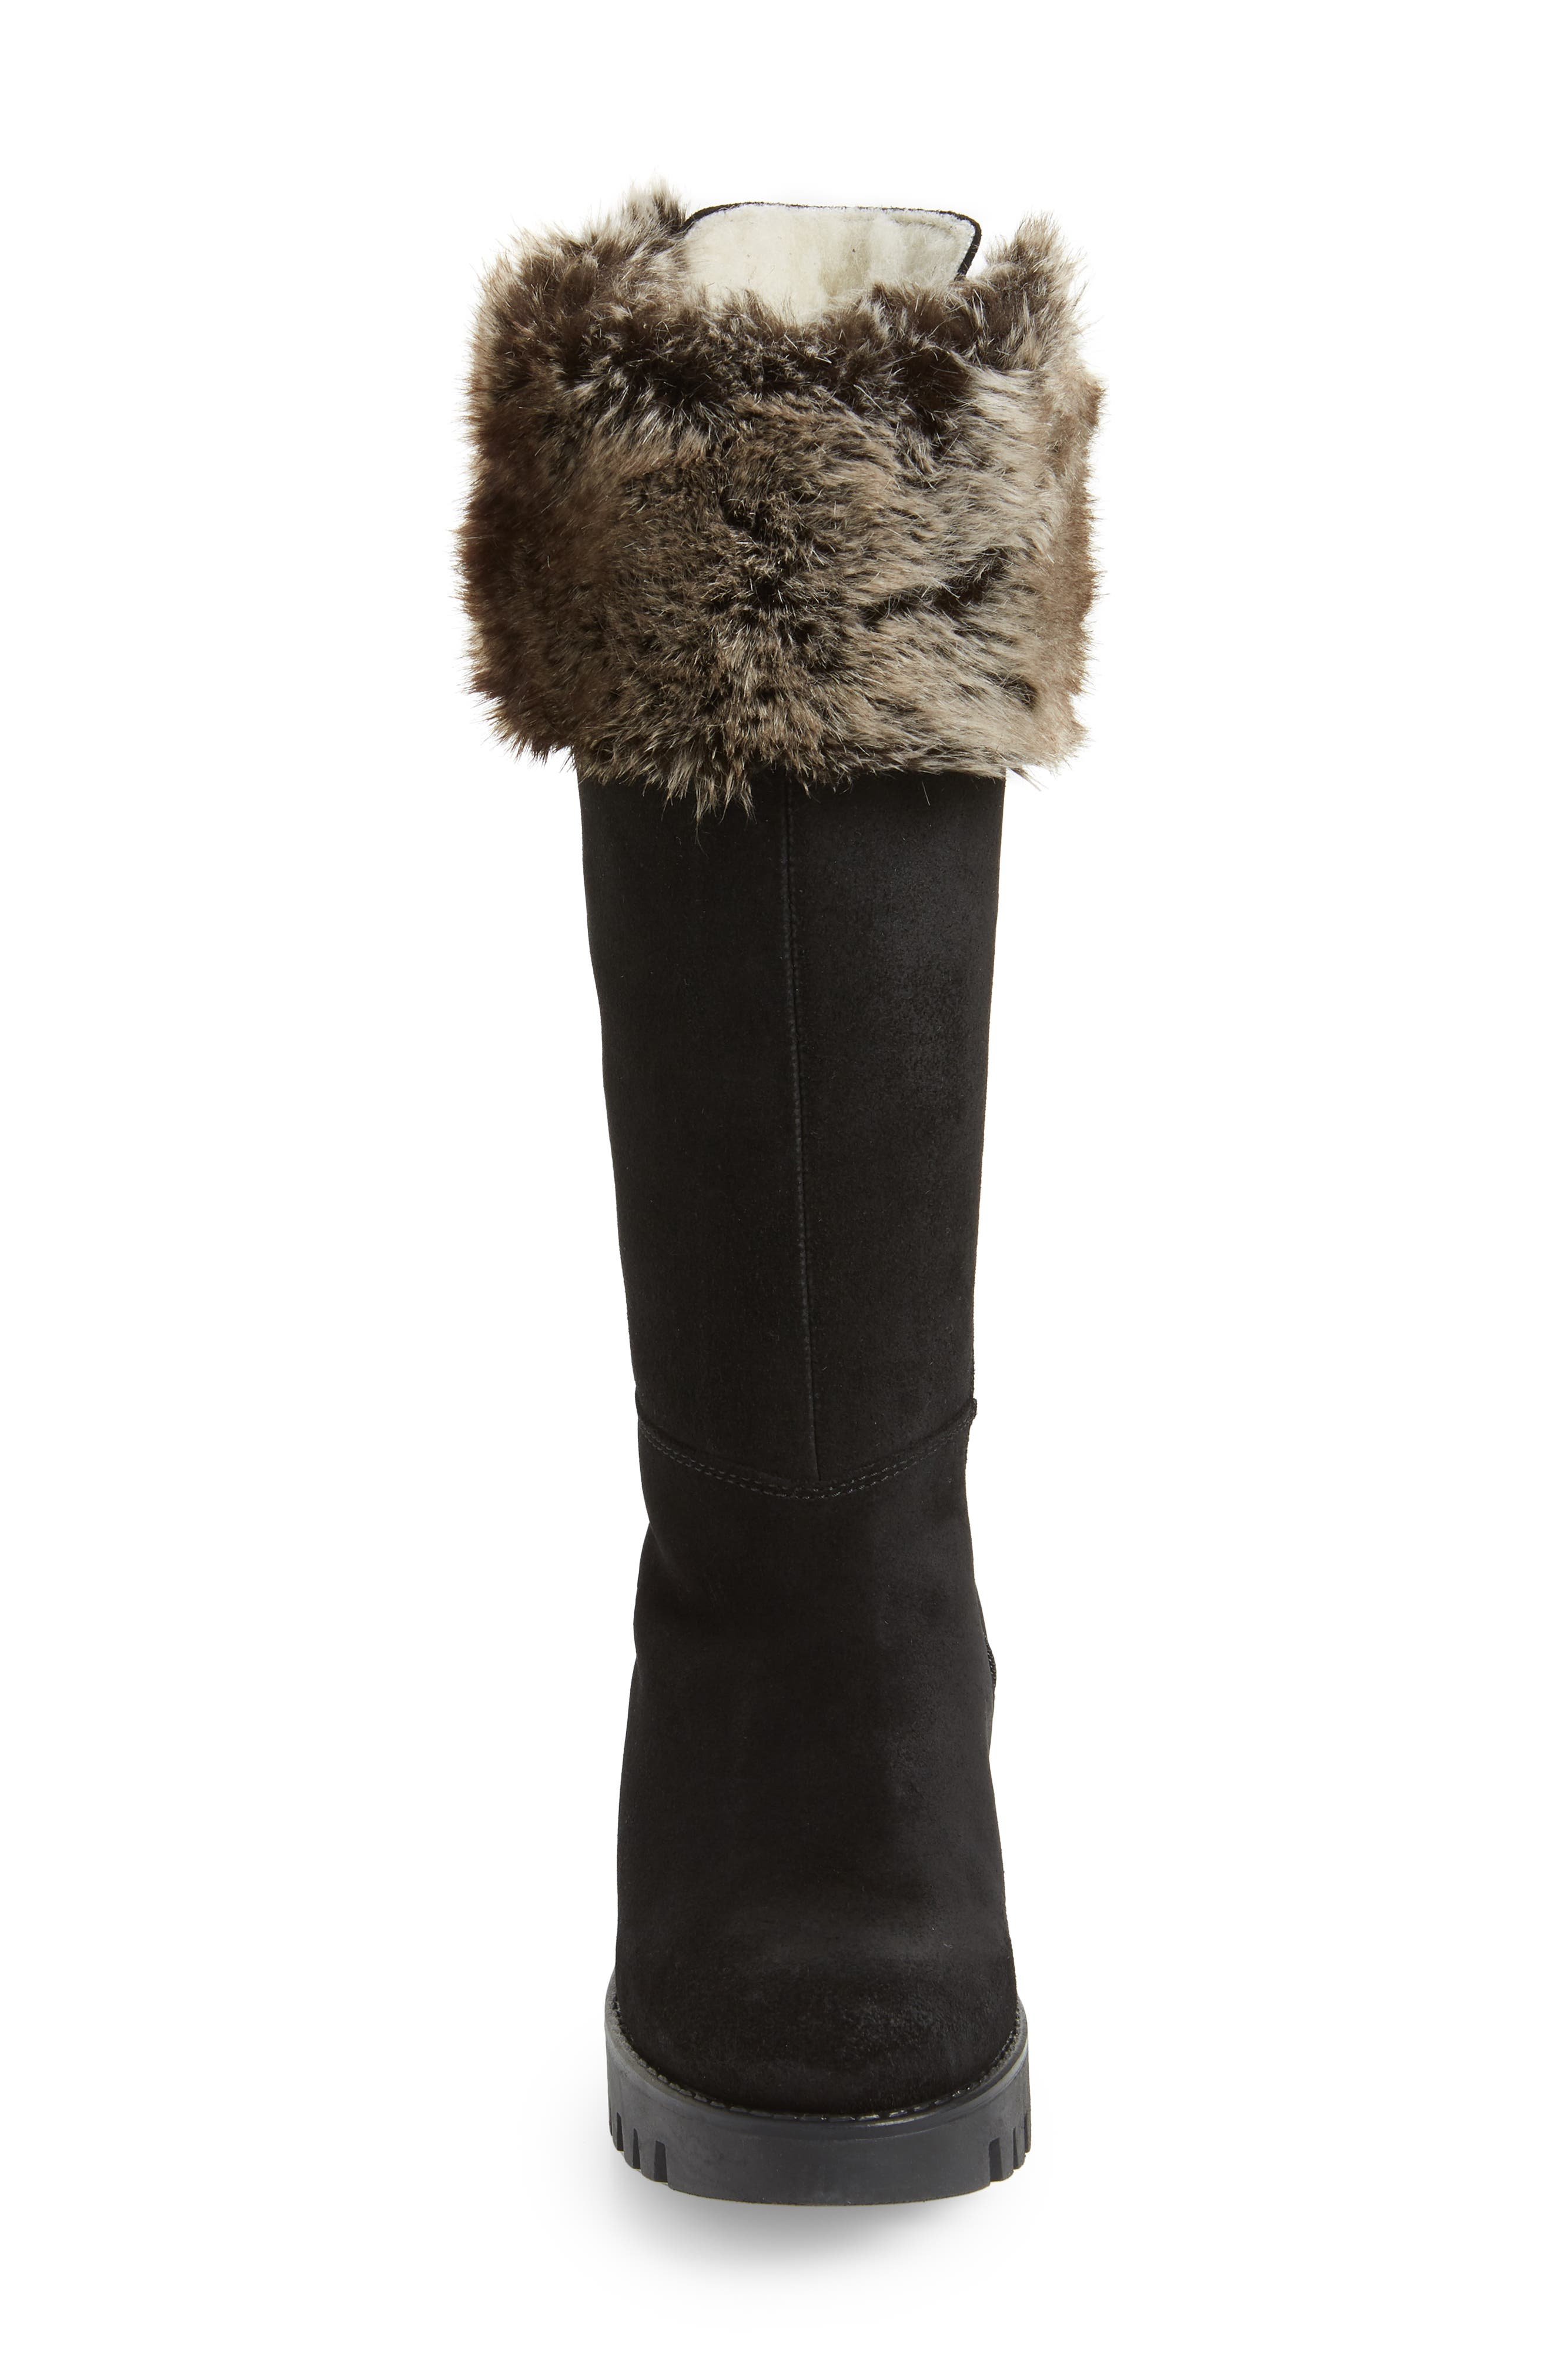 Graham Waterproof Winter Boot with Faux Fur Cuff,                             Alternate thumbnail 4, color,                             BLACK SUEDE